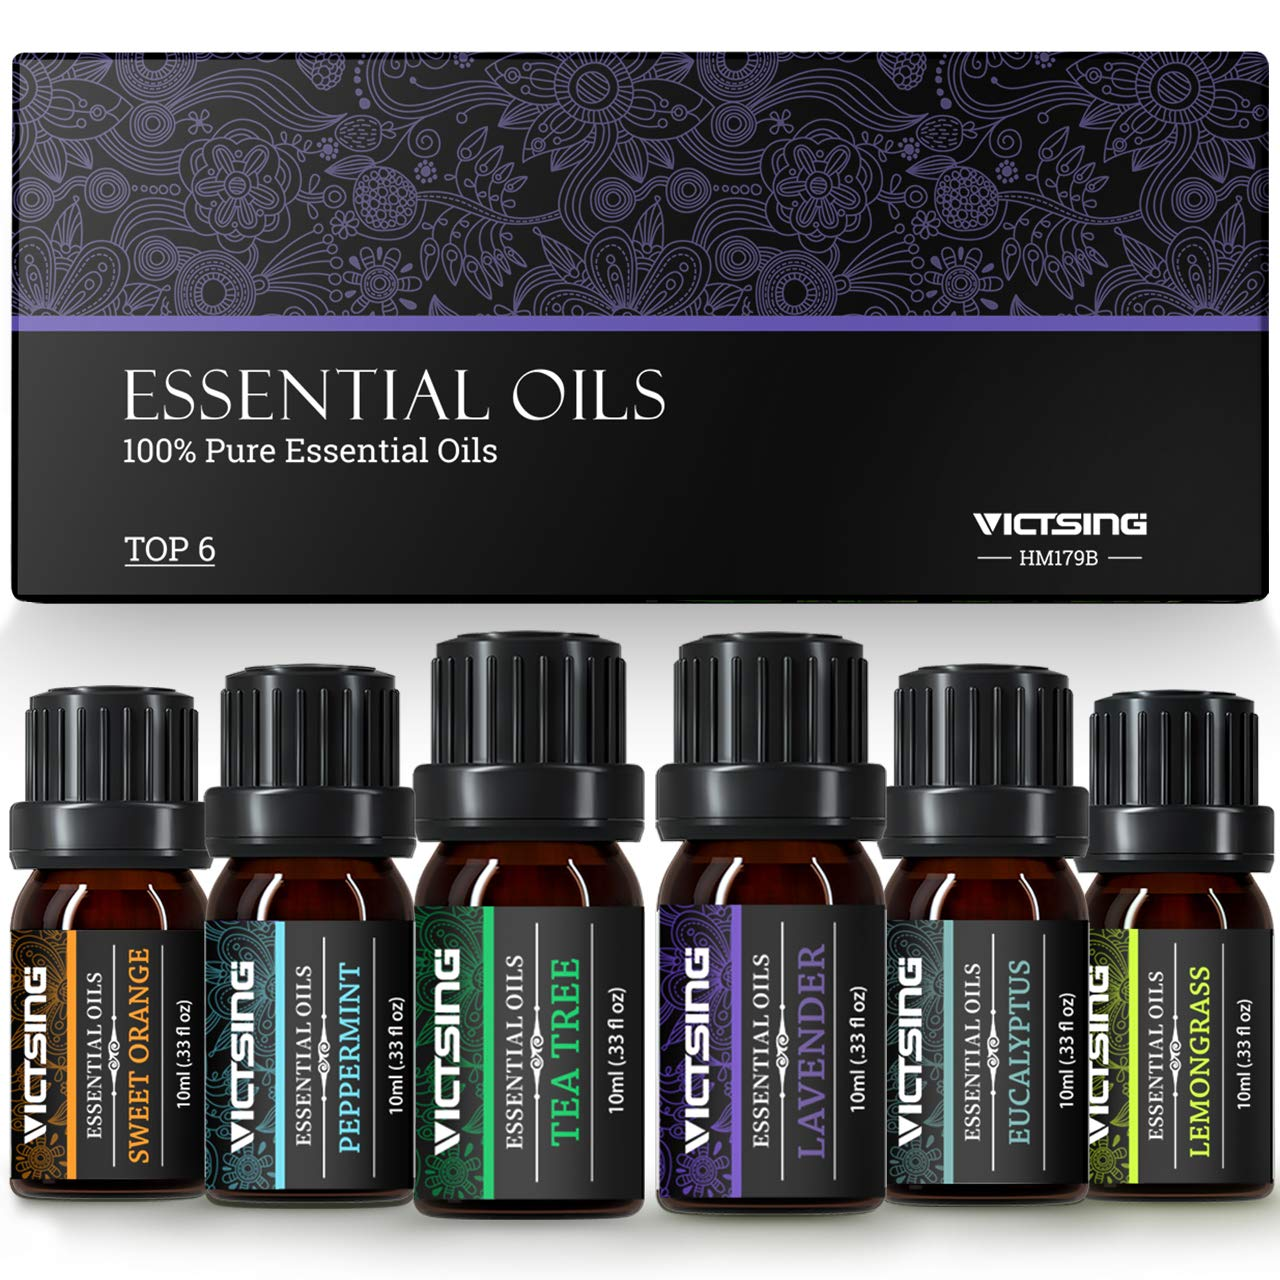 VicTsing Essential Oils Gift Set for Aromatherapy (10ml*Top 6), 100% Pure Scented Oils for Oil Diffusers-Lavender, Lemongrass, Tea Tree, Eucalyptus, Sweet Orange, Peppermint